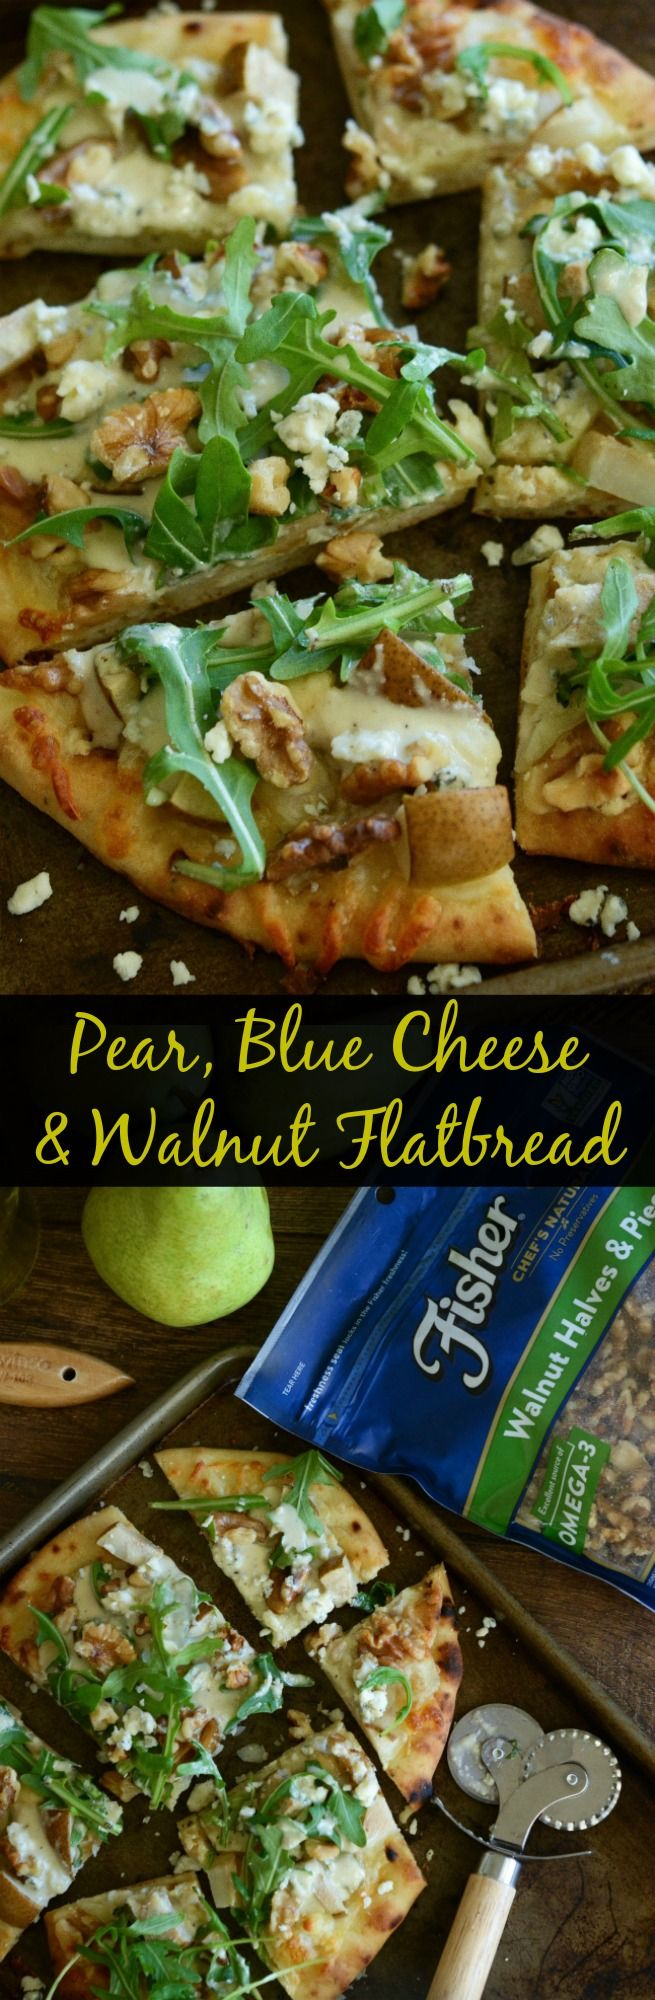 Pear, Blue Cheese & Walnut Flatbread - ready in 20 minutes! This heart healthy recipe brought to you by @FisherNuts! #thinkfisher #ad